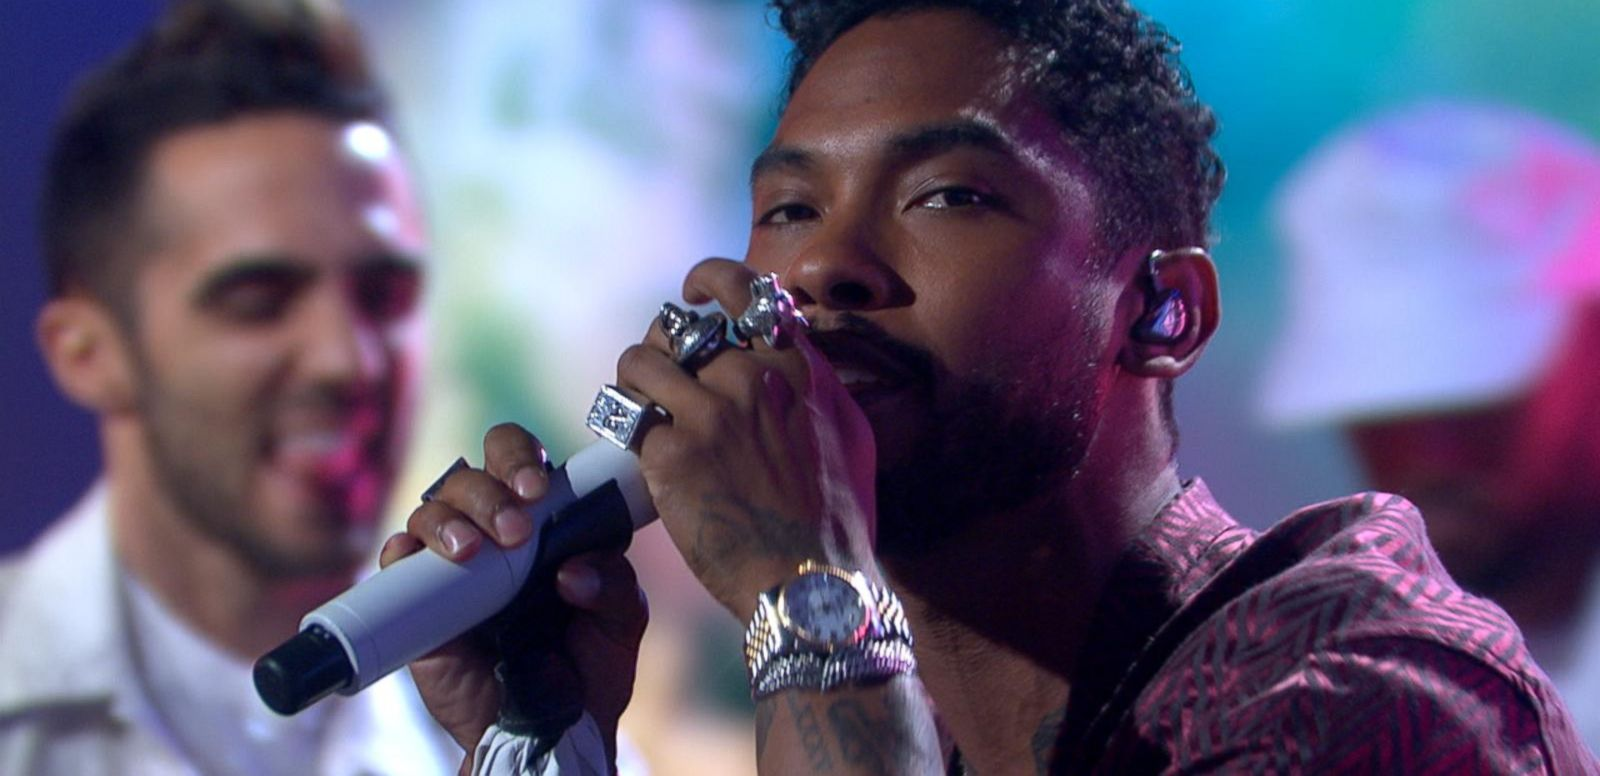 VIDEO: Miguel Performs His Latest Single 'Coffee' Live in Times Square!